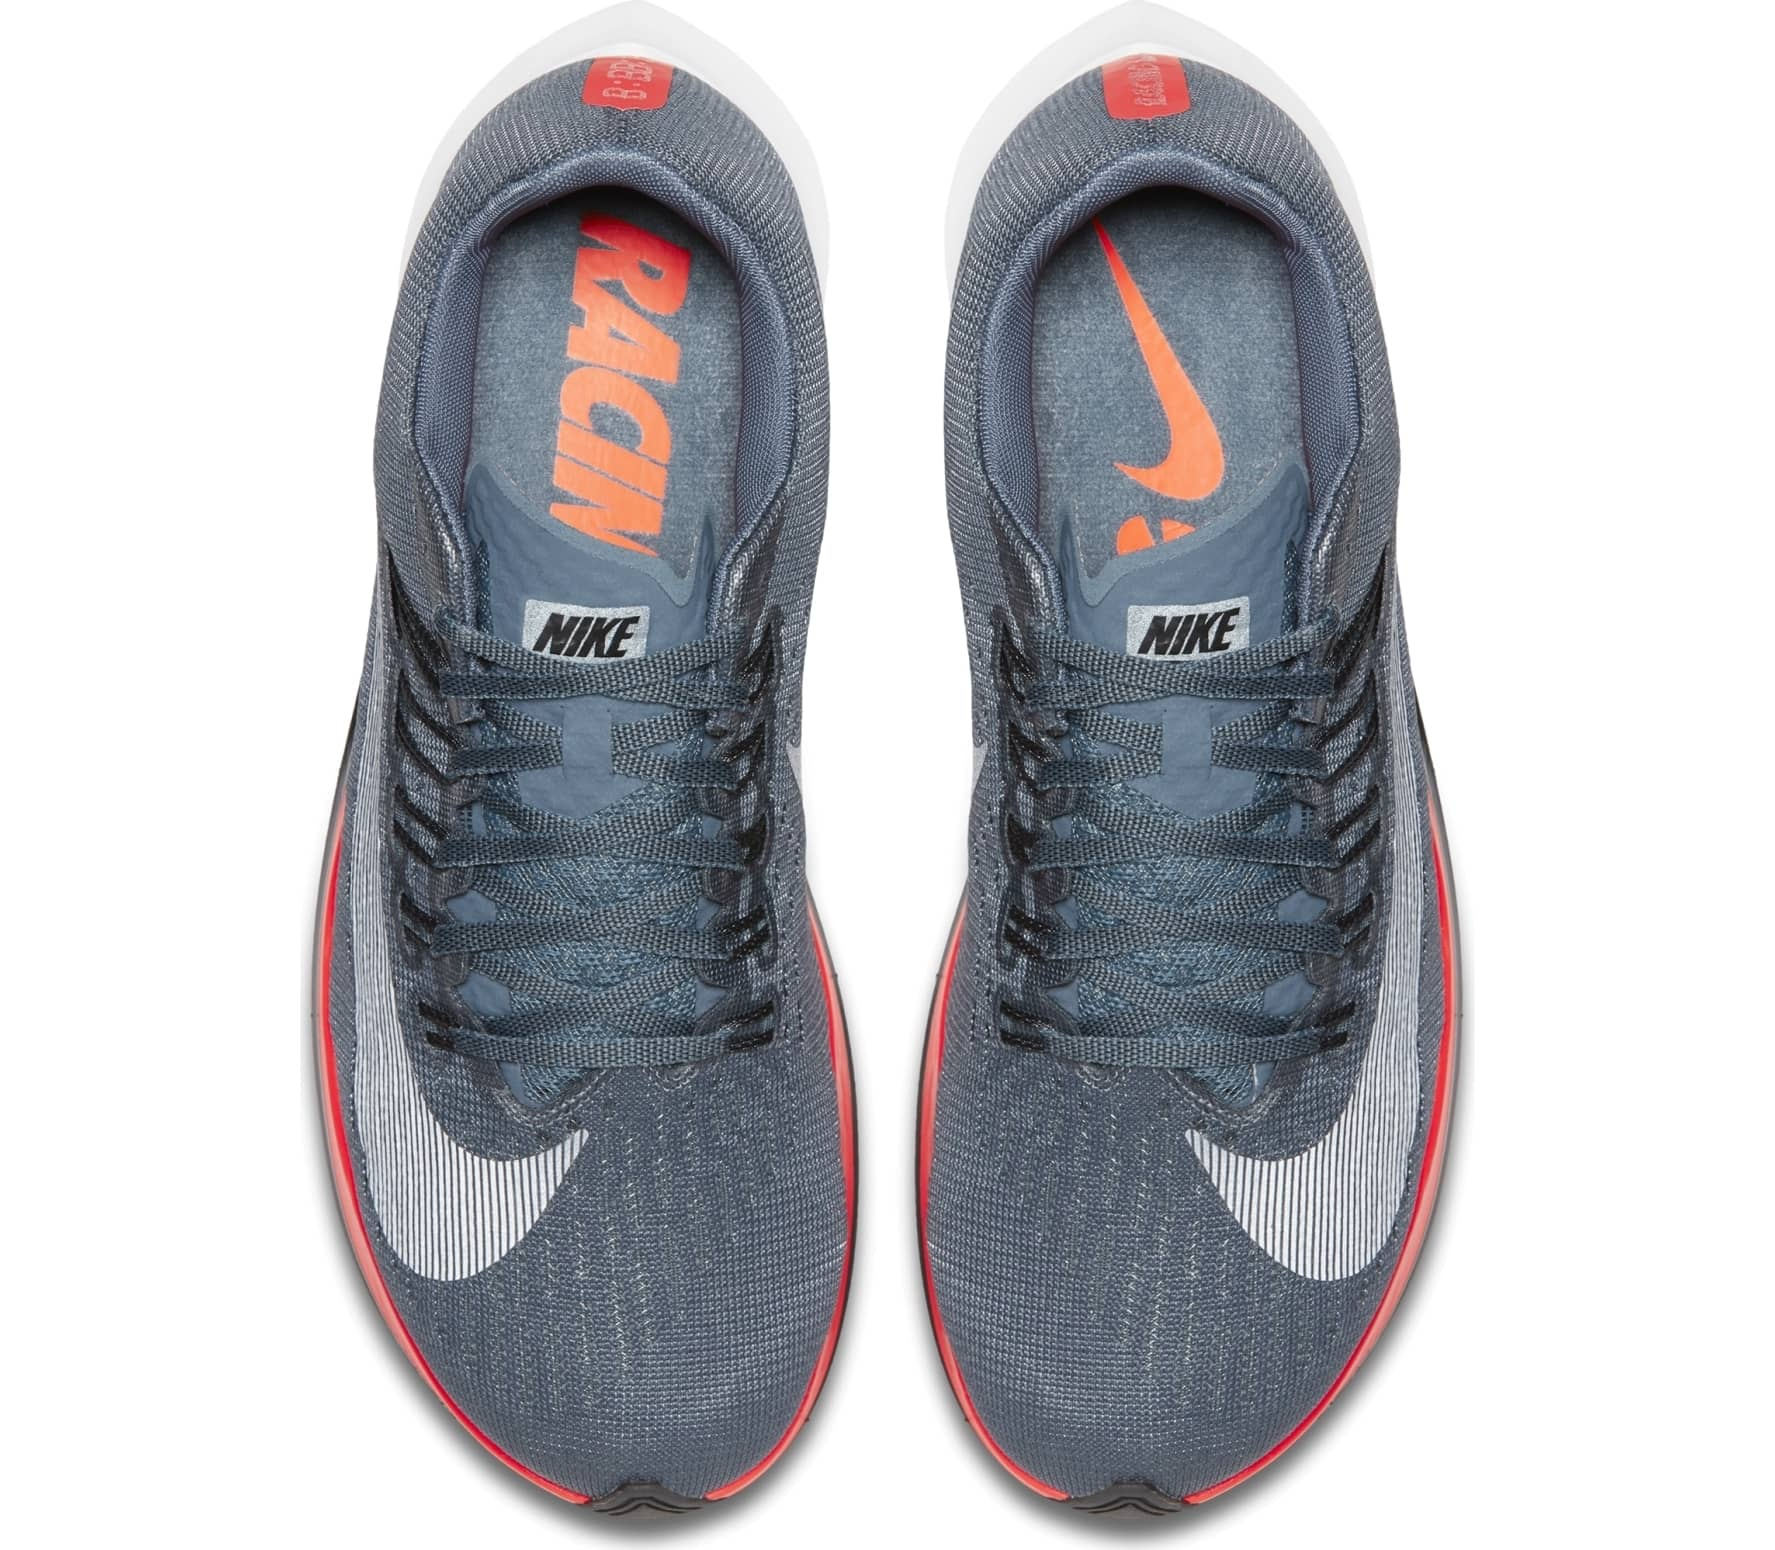 reputable site f8531 ee2a6 Nike - Zoom Fly women's running shoes (blue-grey) Online kopen in de ...